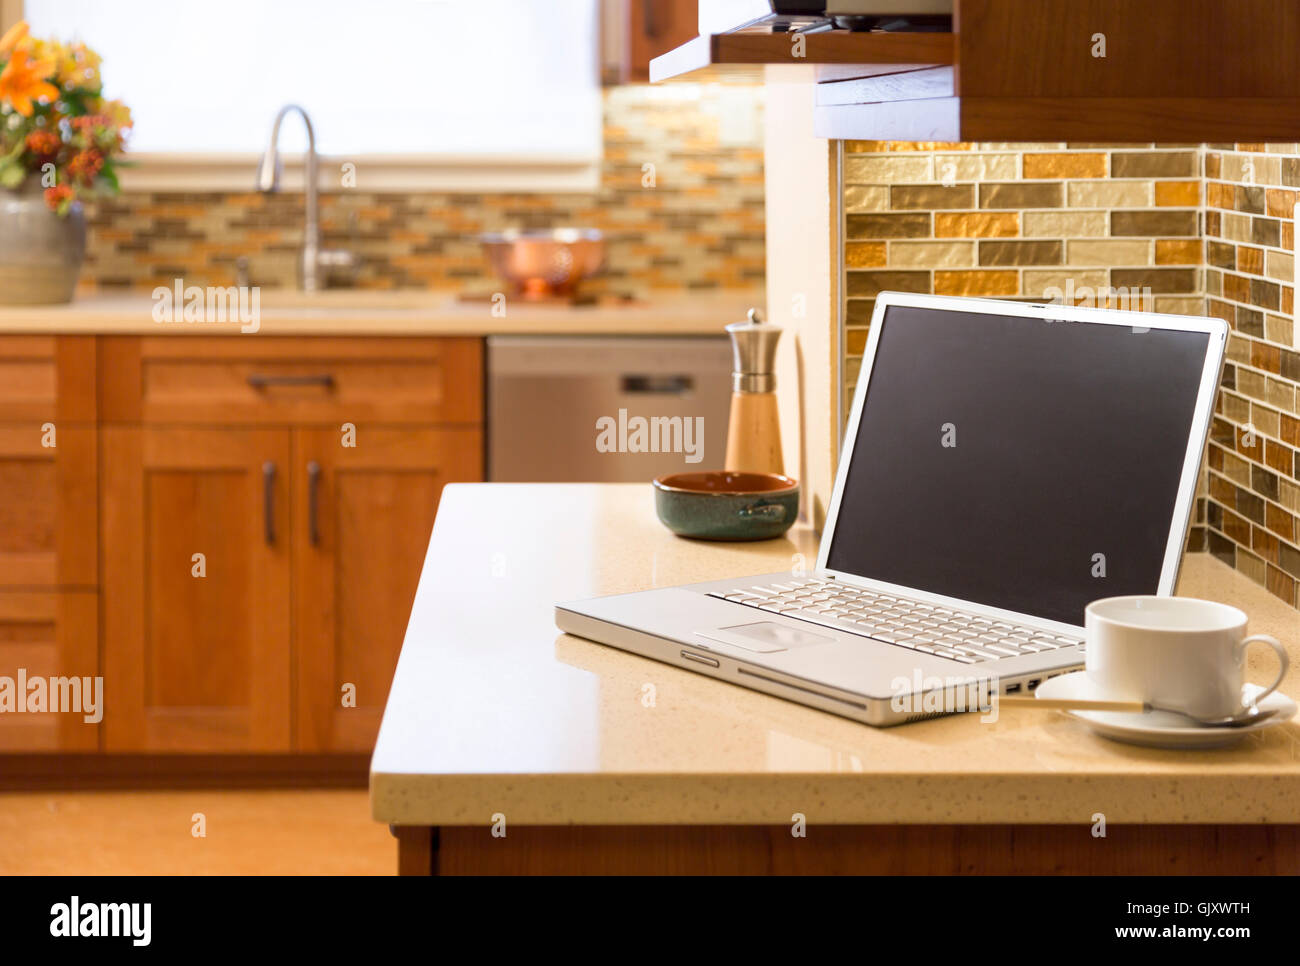 Laptop computer wireless wifi technology in contemporary upscale home kitchen interior. Working from home office. - Stock Image